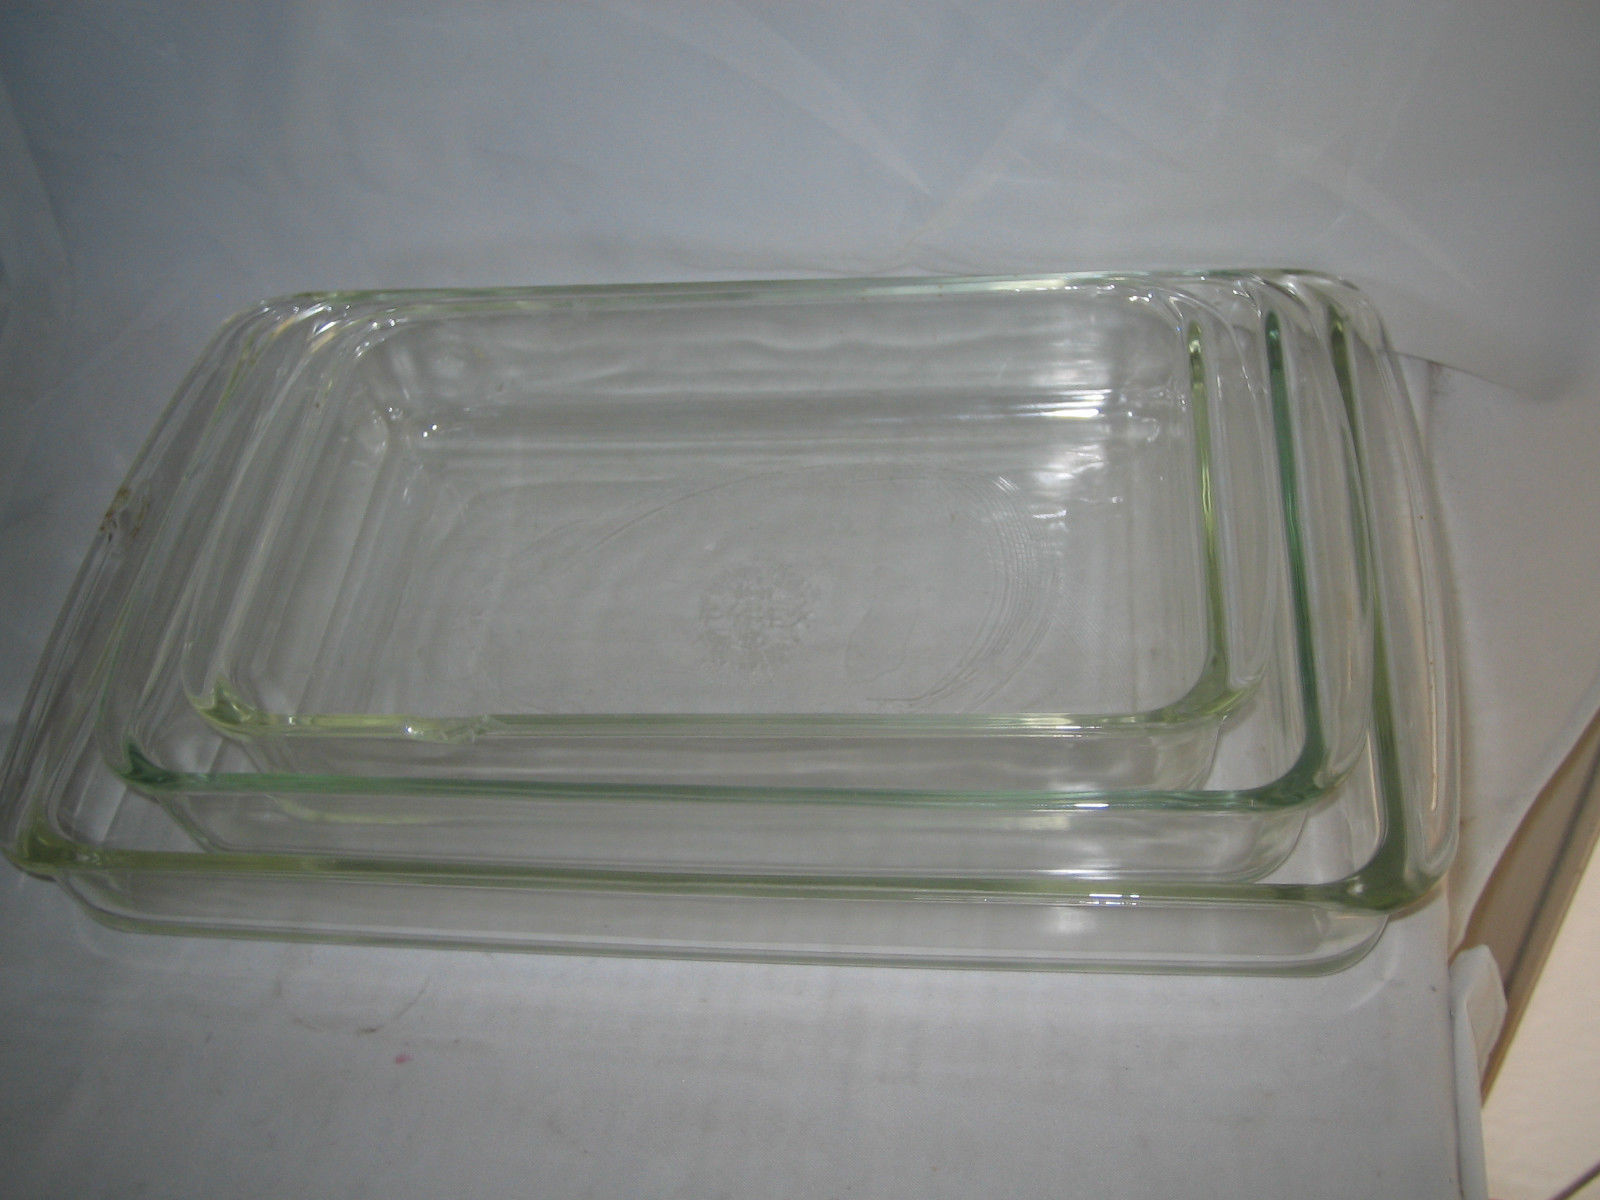 WHITE or BLUE 233-PC *Tab Handles 1 PYREX Bakeware 9 x 13 PLASTIC COVER Choose